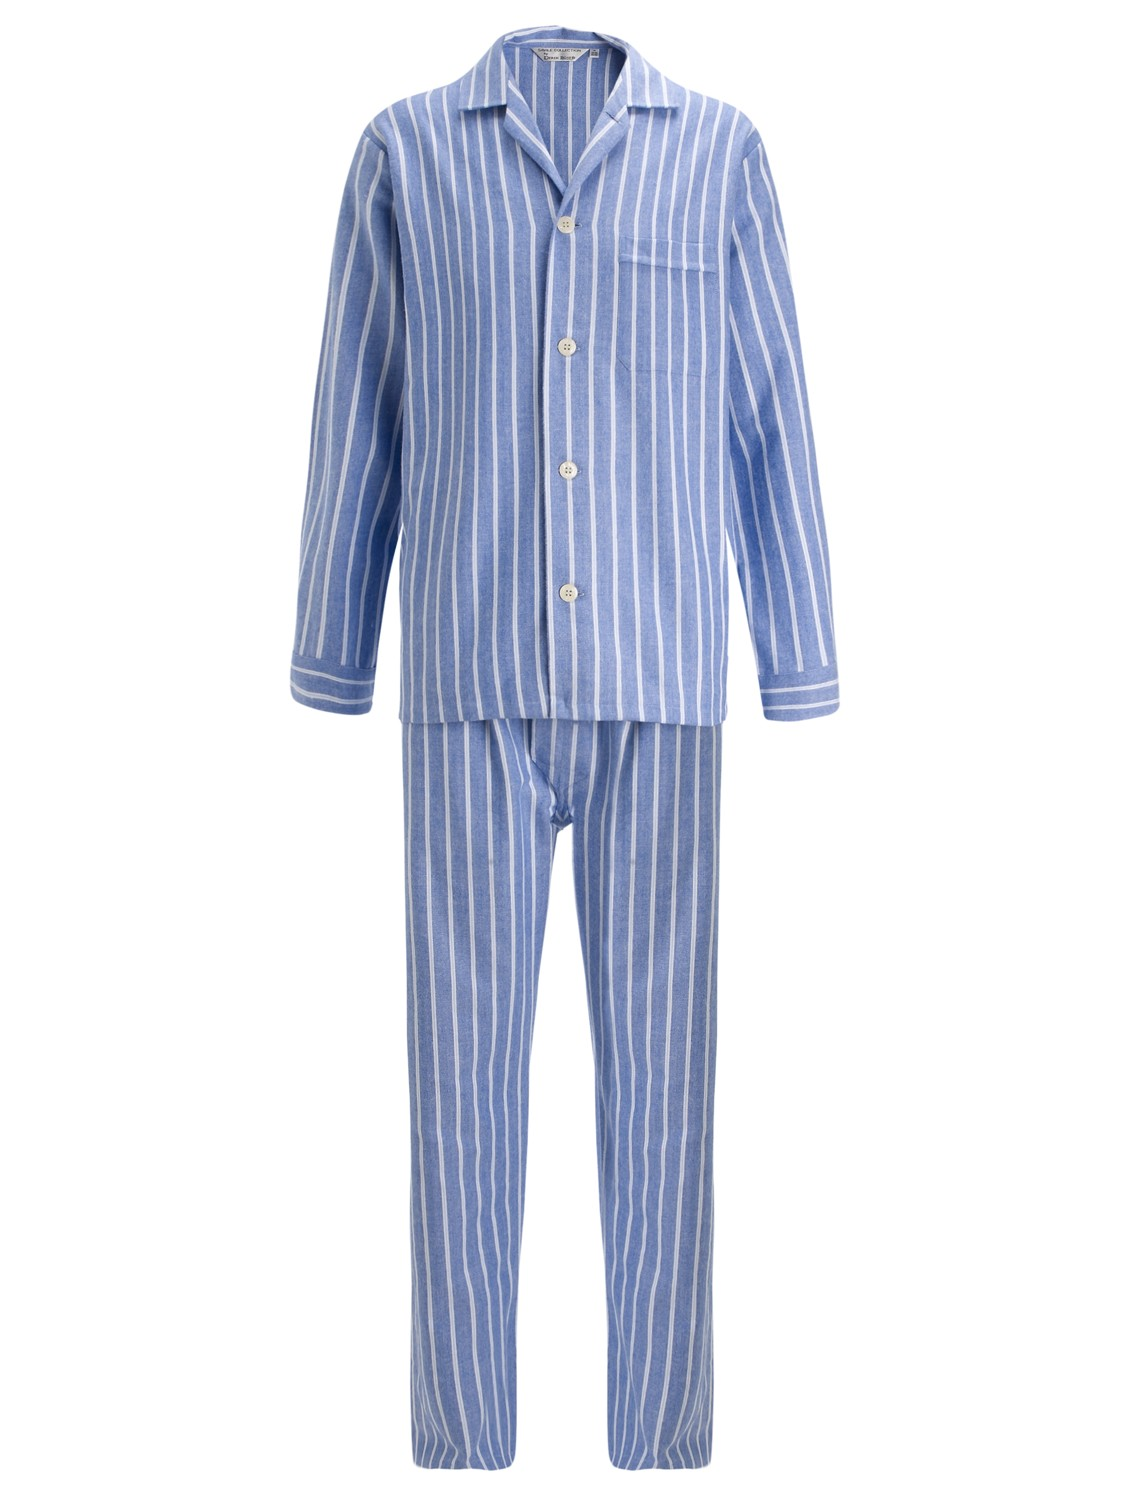 Derek Rose Savile Row Stripe Cotton Pyjamas in Blue for Men - Lyst